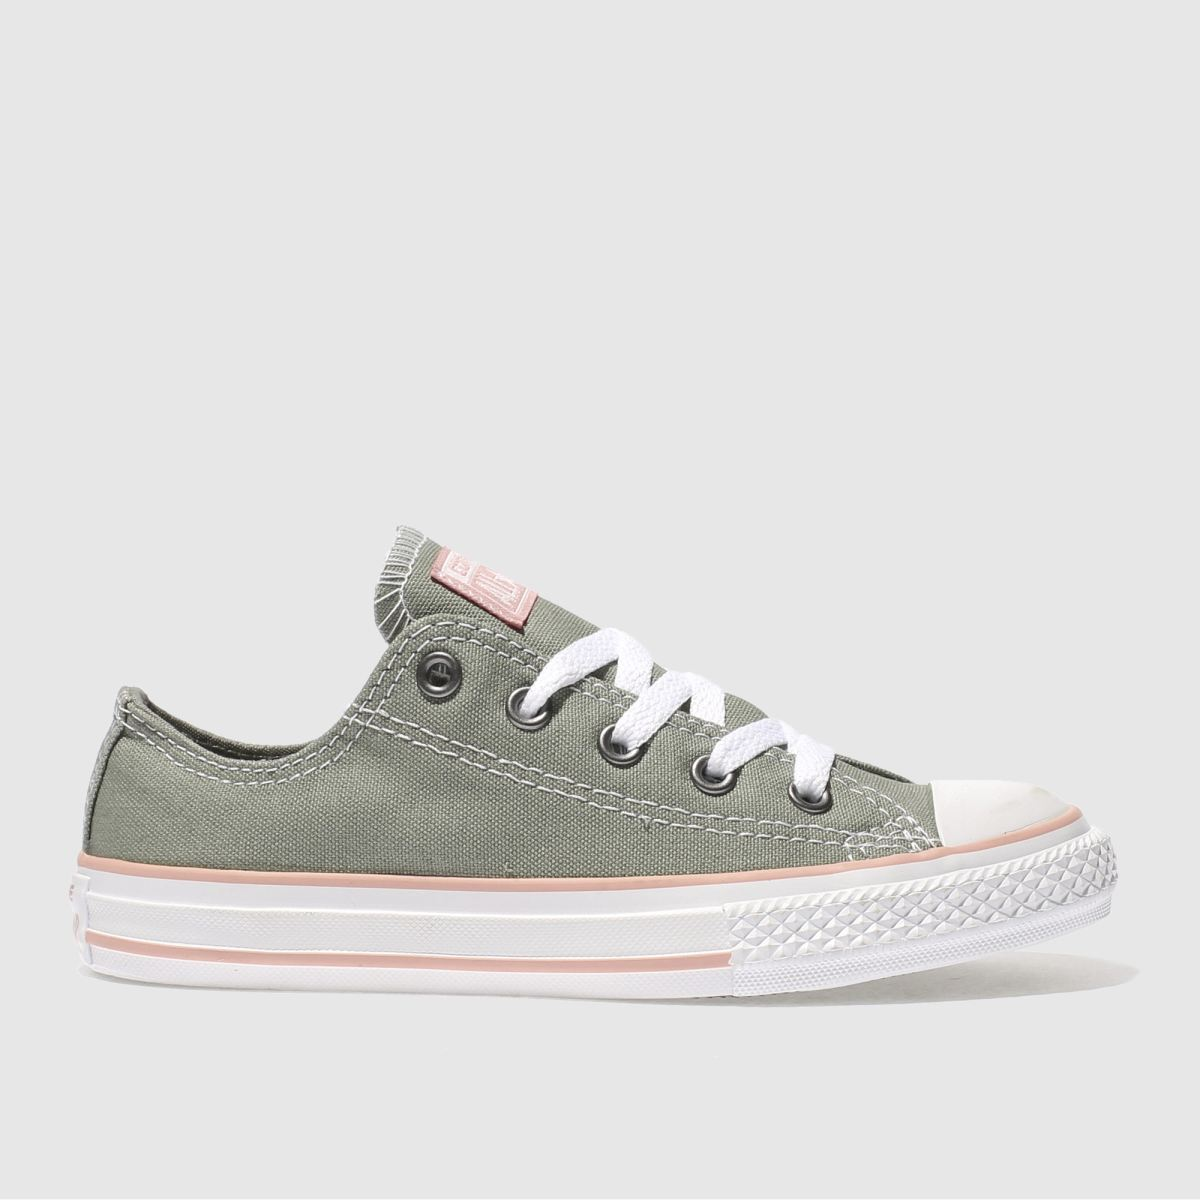 converse khaki chuck taylor all star lo Girls Junior Trainers